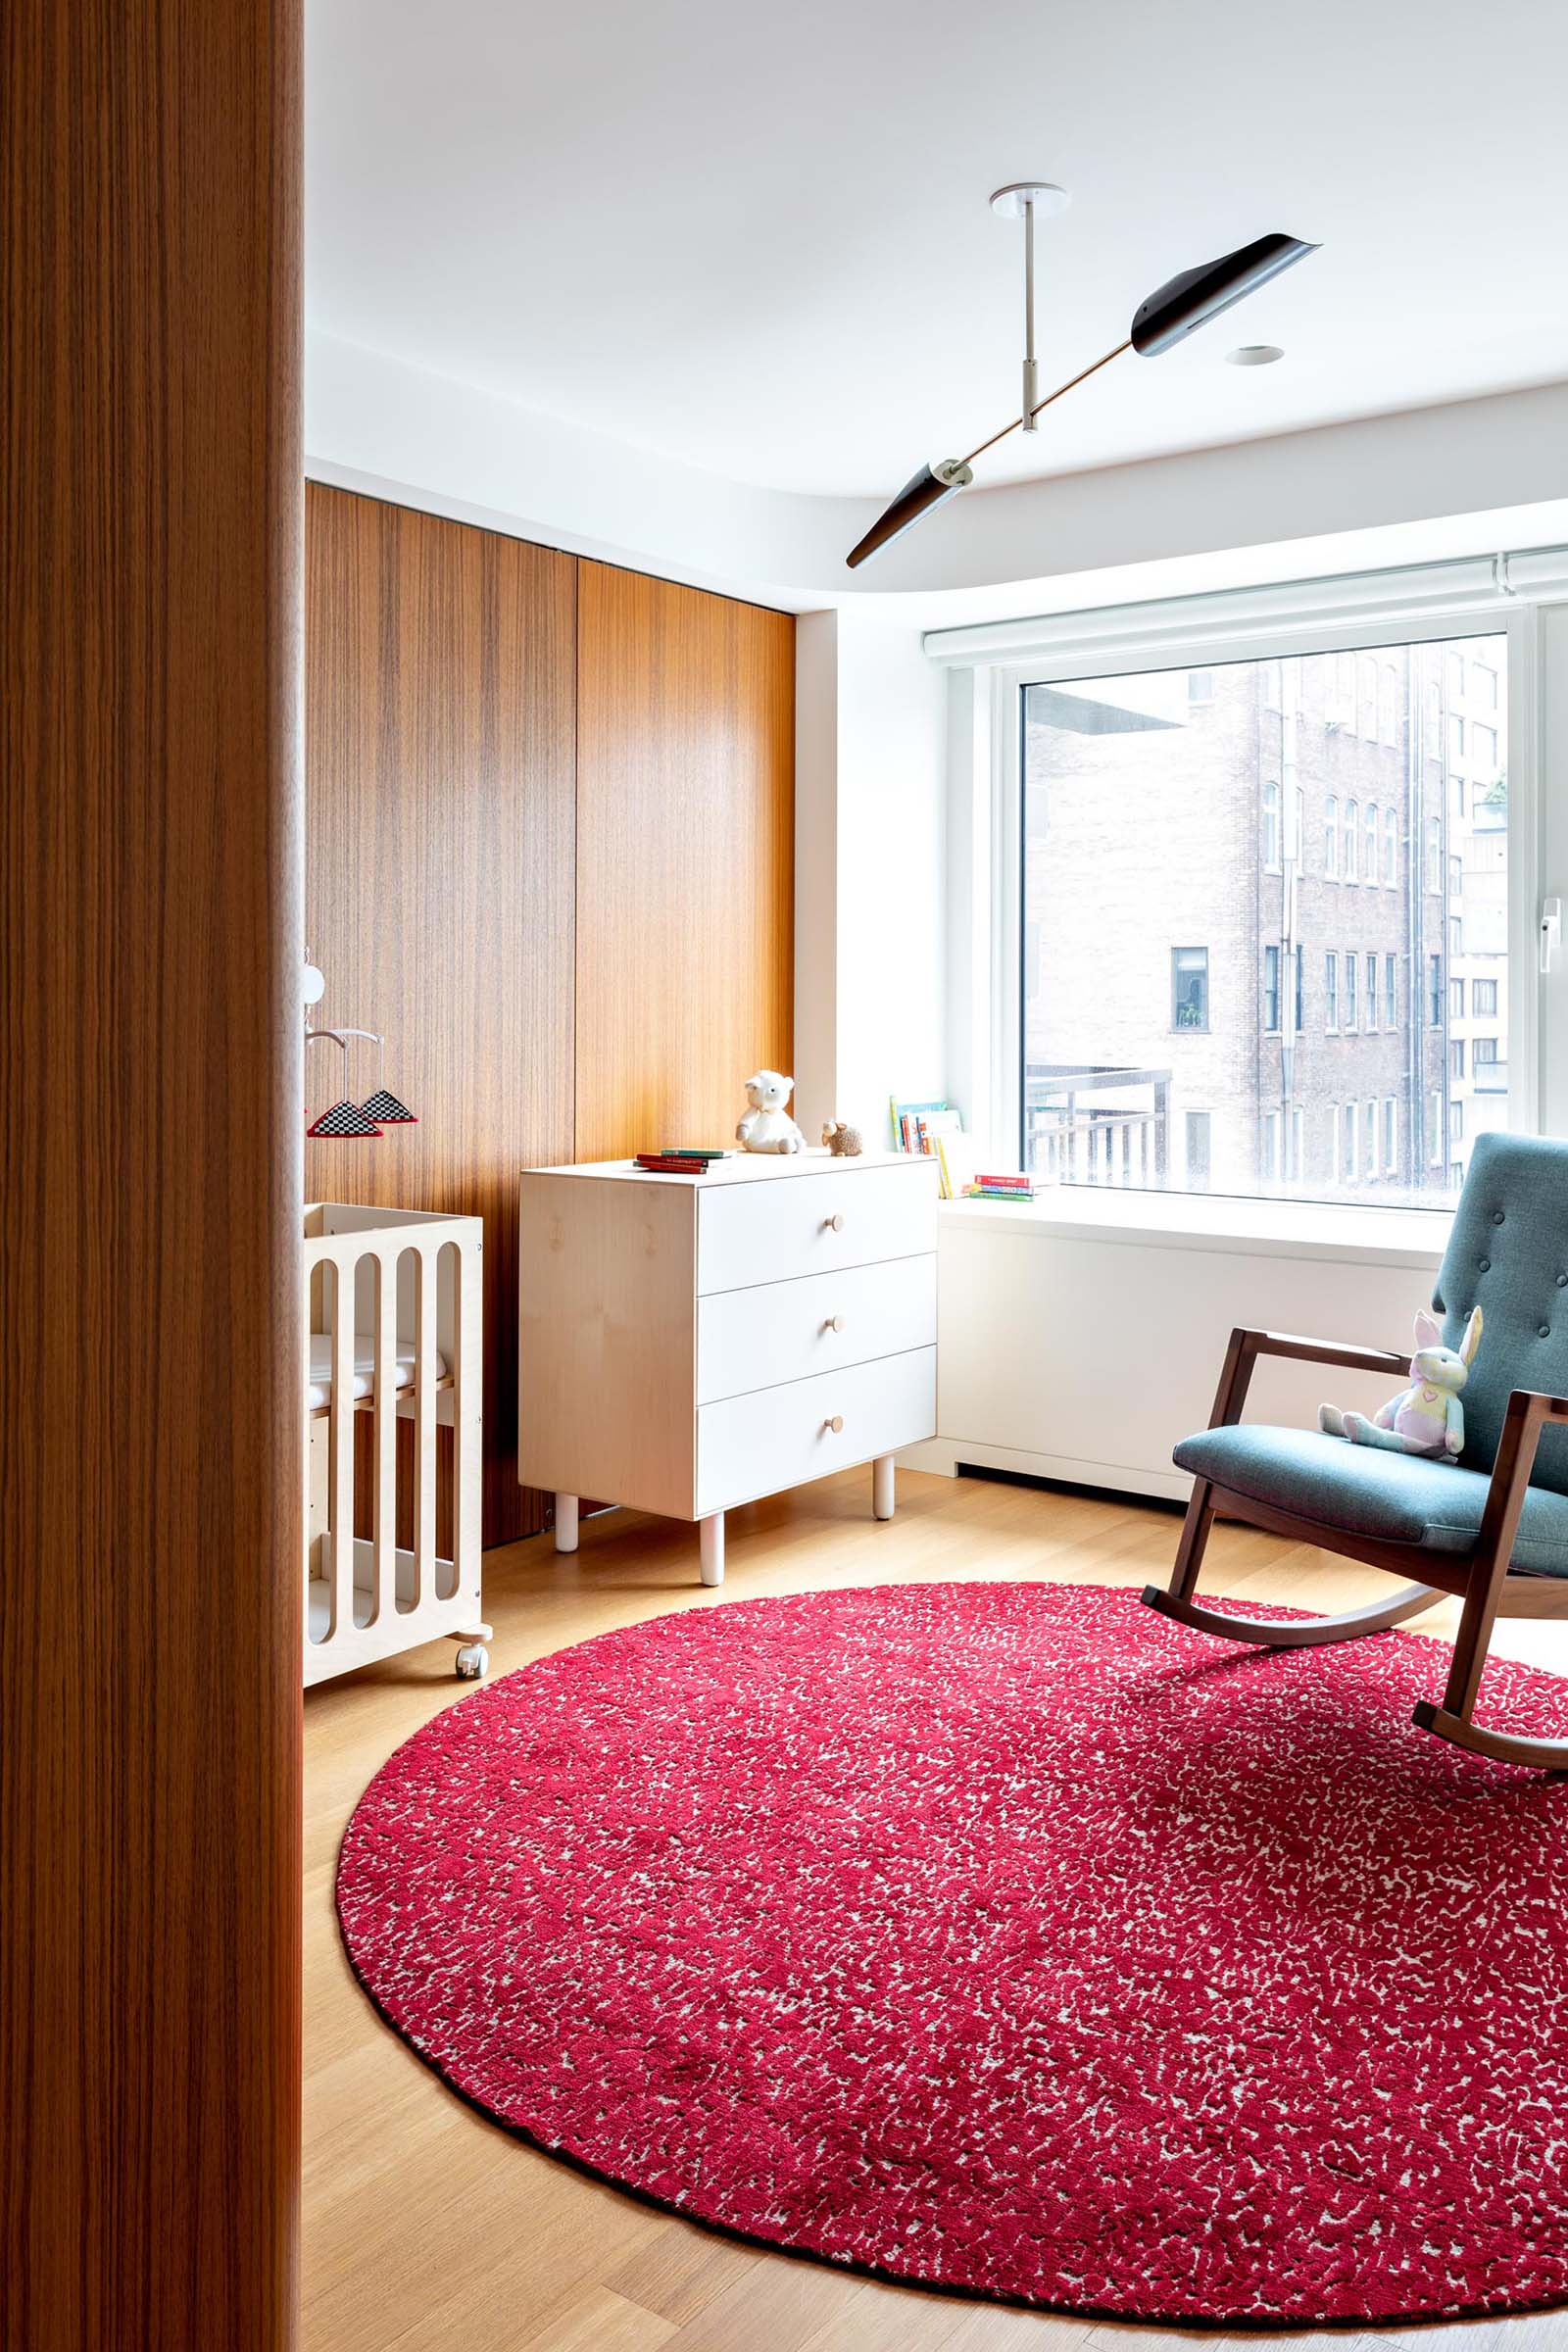 A modern nursery room with a colorful pink rug and a blue rocking chair.